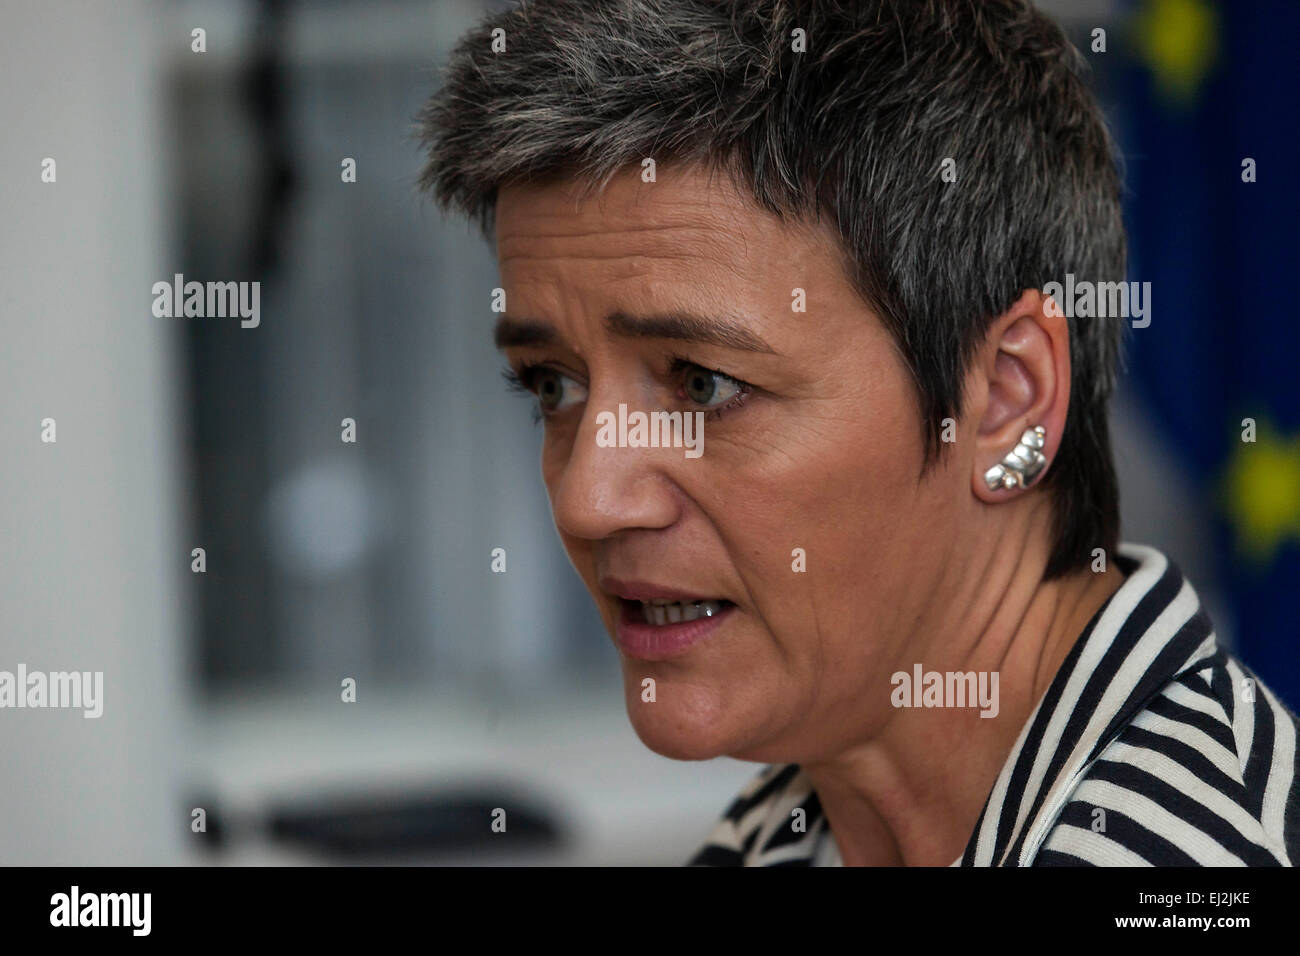 Copenhagen, Denmark, March 20th, 2015: Mrs. Margrethe Vestager, EU competition commissioner, said at a press briefing - Stock Image